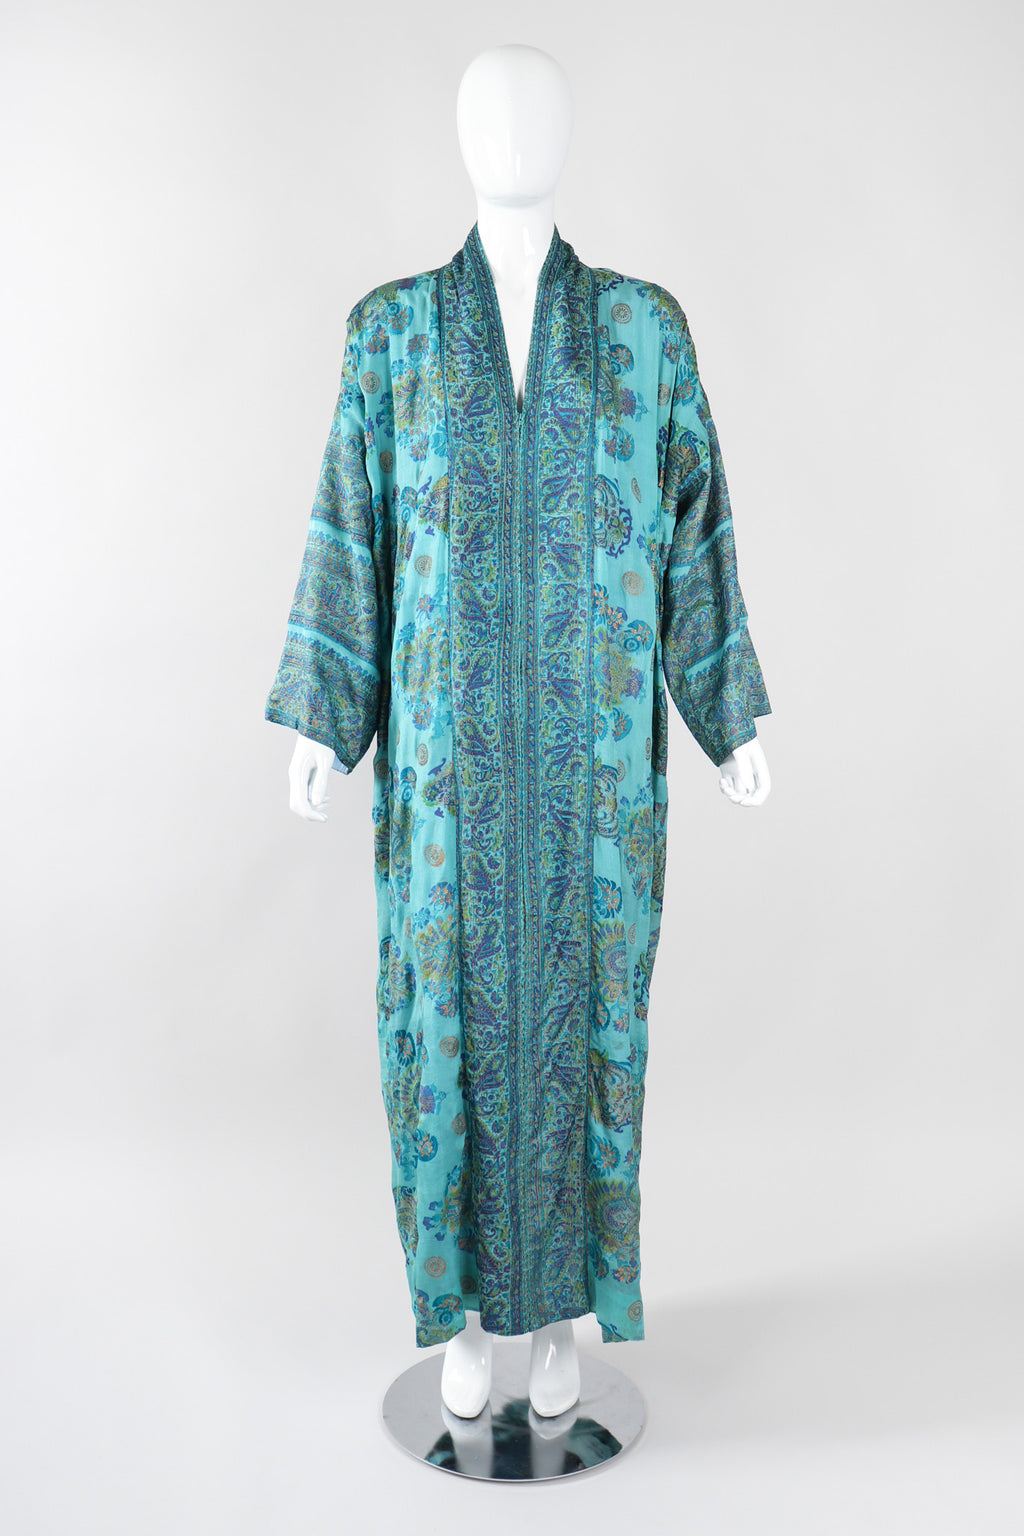 Recess Los Angeles Vintage Saks Fifth Ave Indian Block Print Silk Palm Springs Caftan